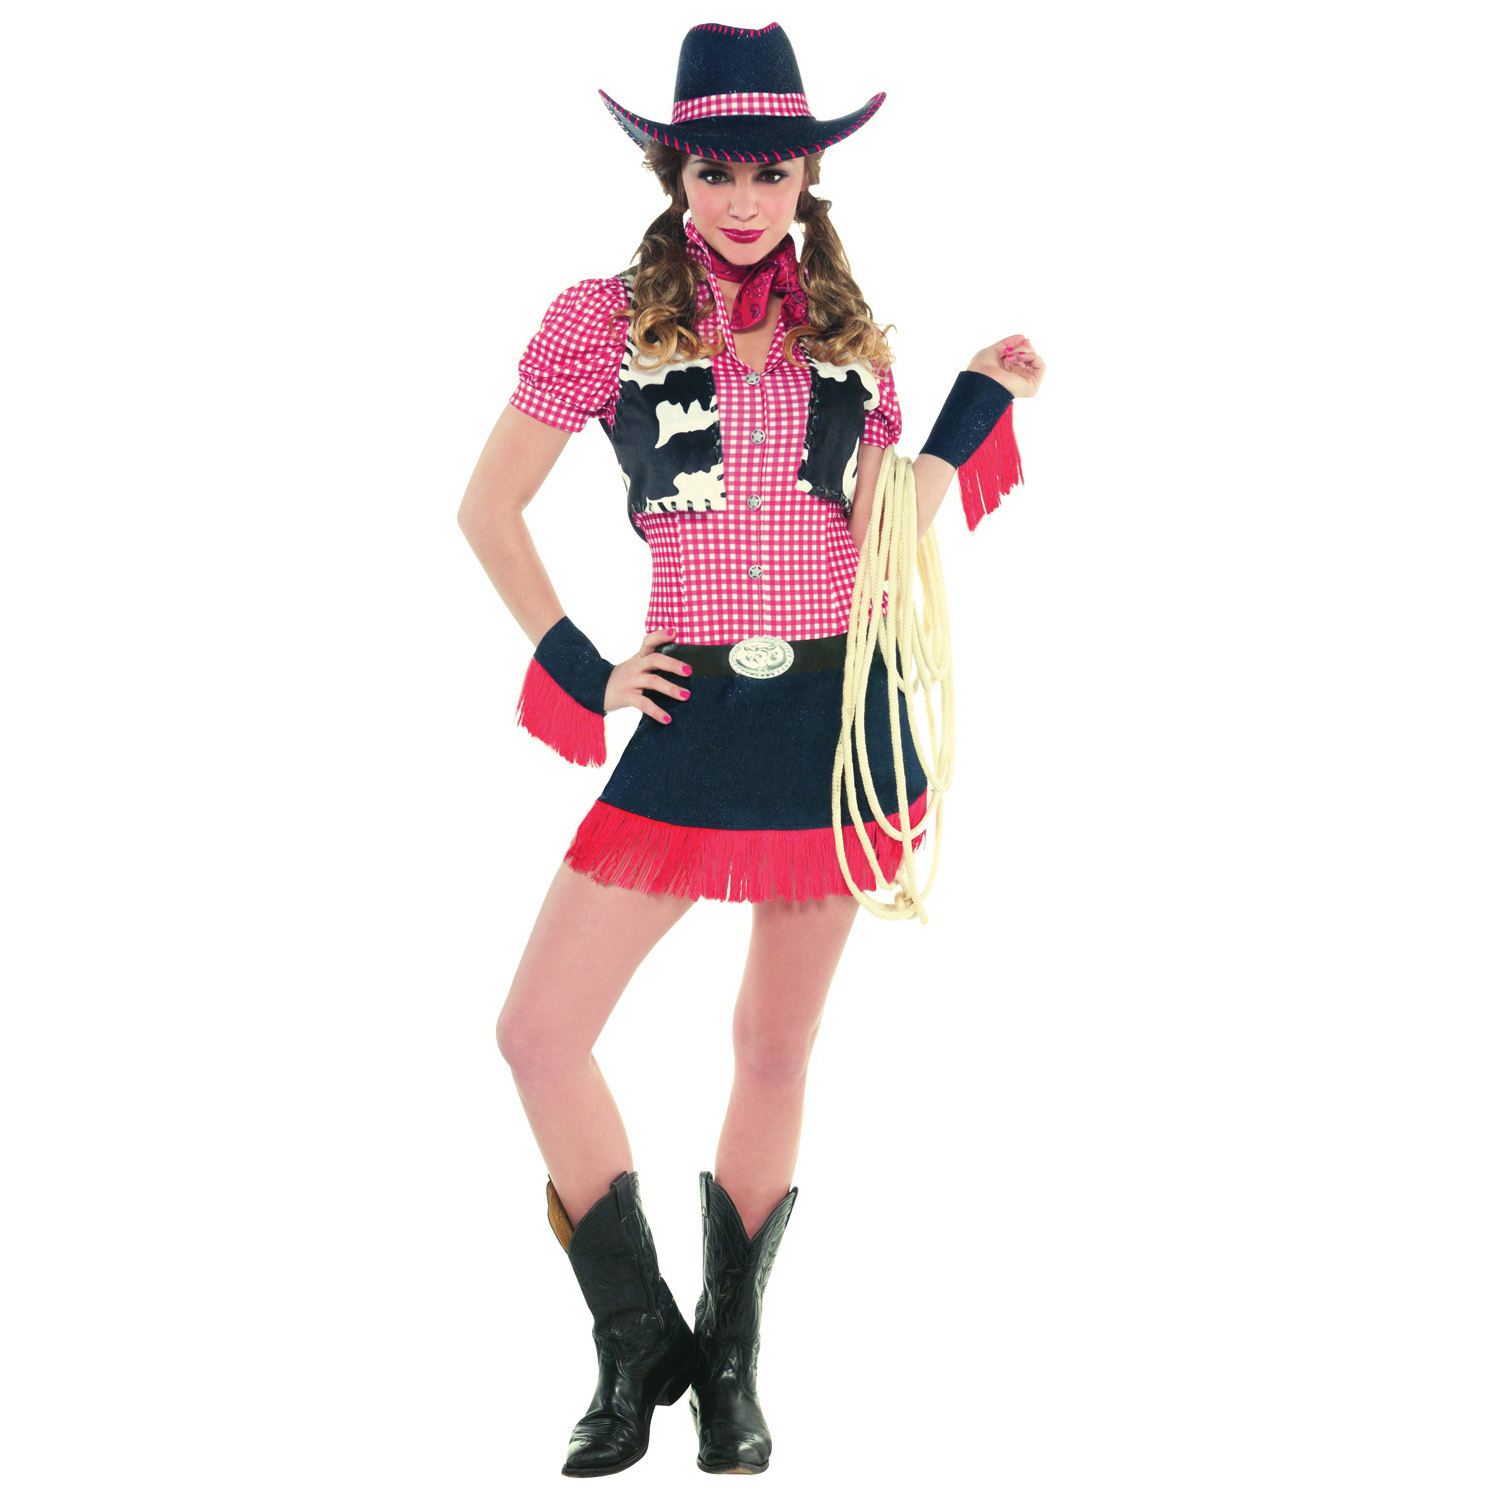 8c1bce978d7 Ladies' Costume Rawhide Cowgirl Size L : Amscan Europe